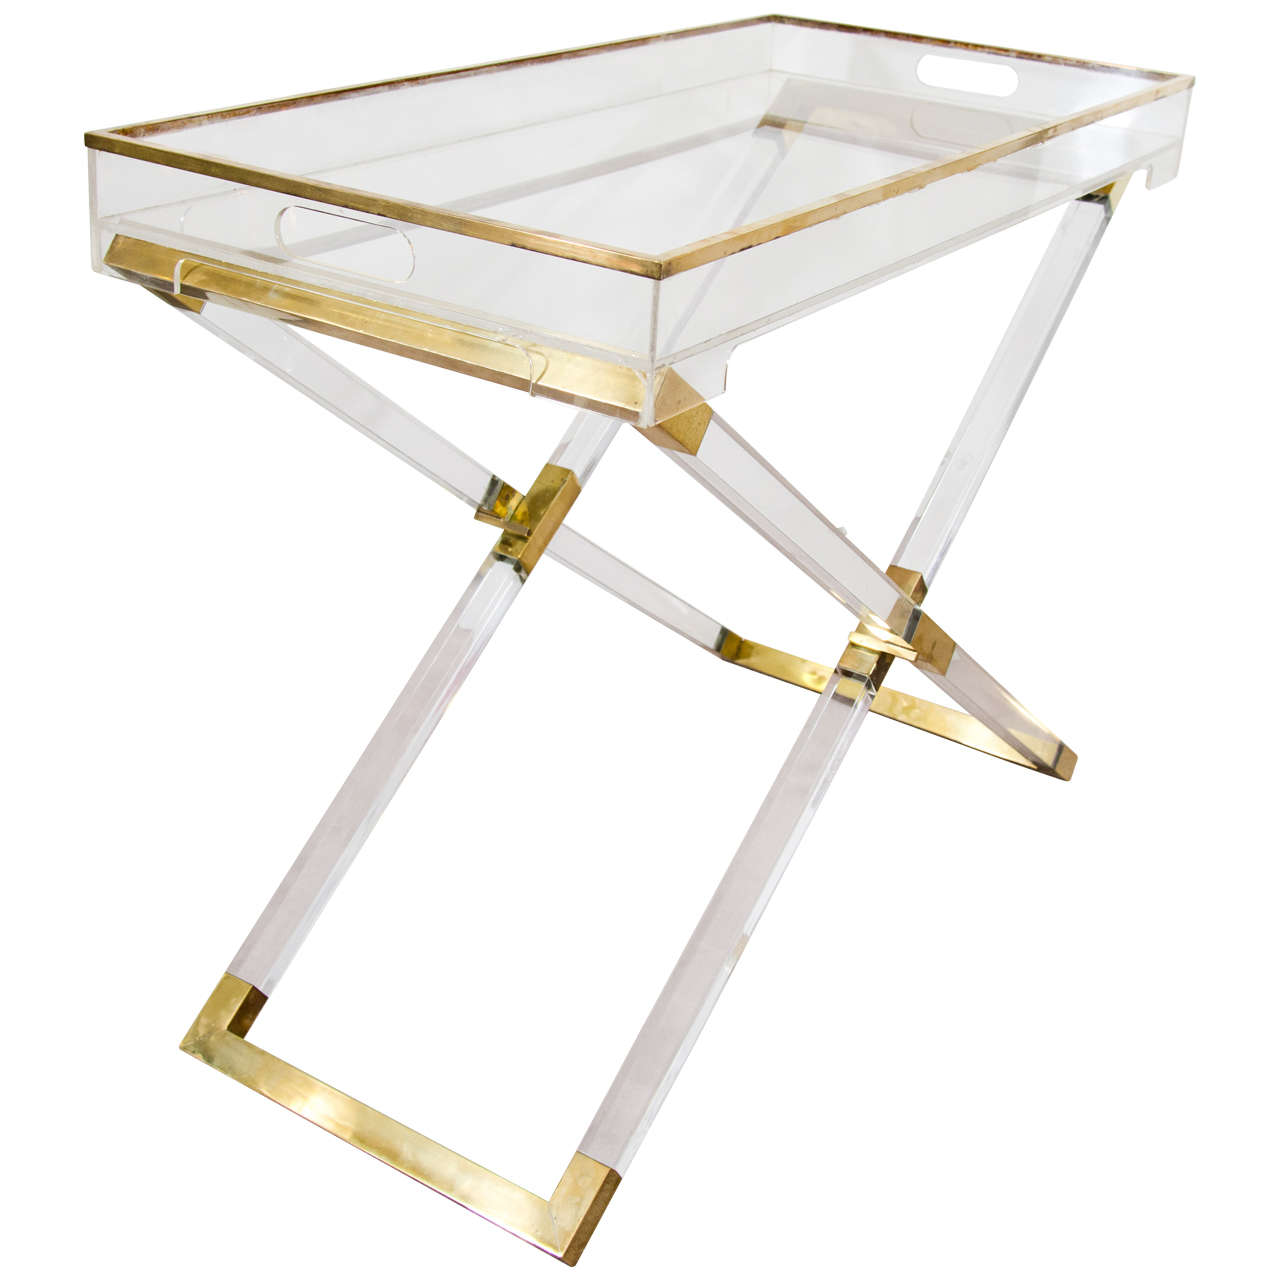 Midcentury Folding Tray Table Or Bar Console Attributed To